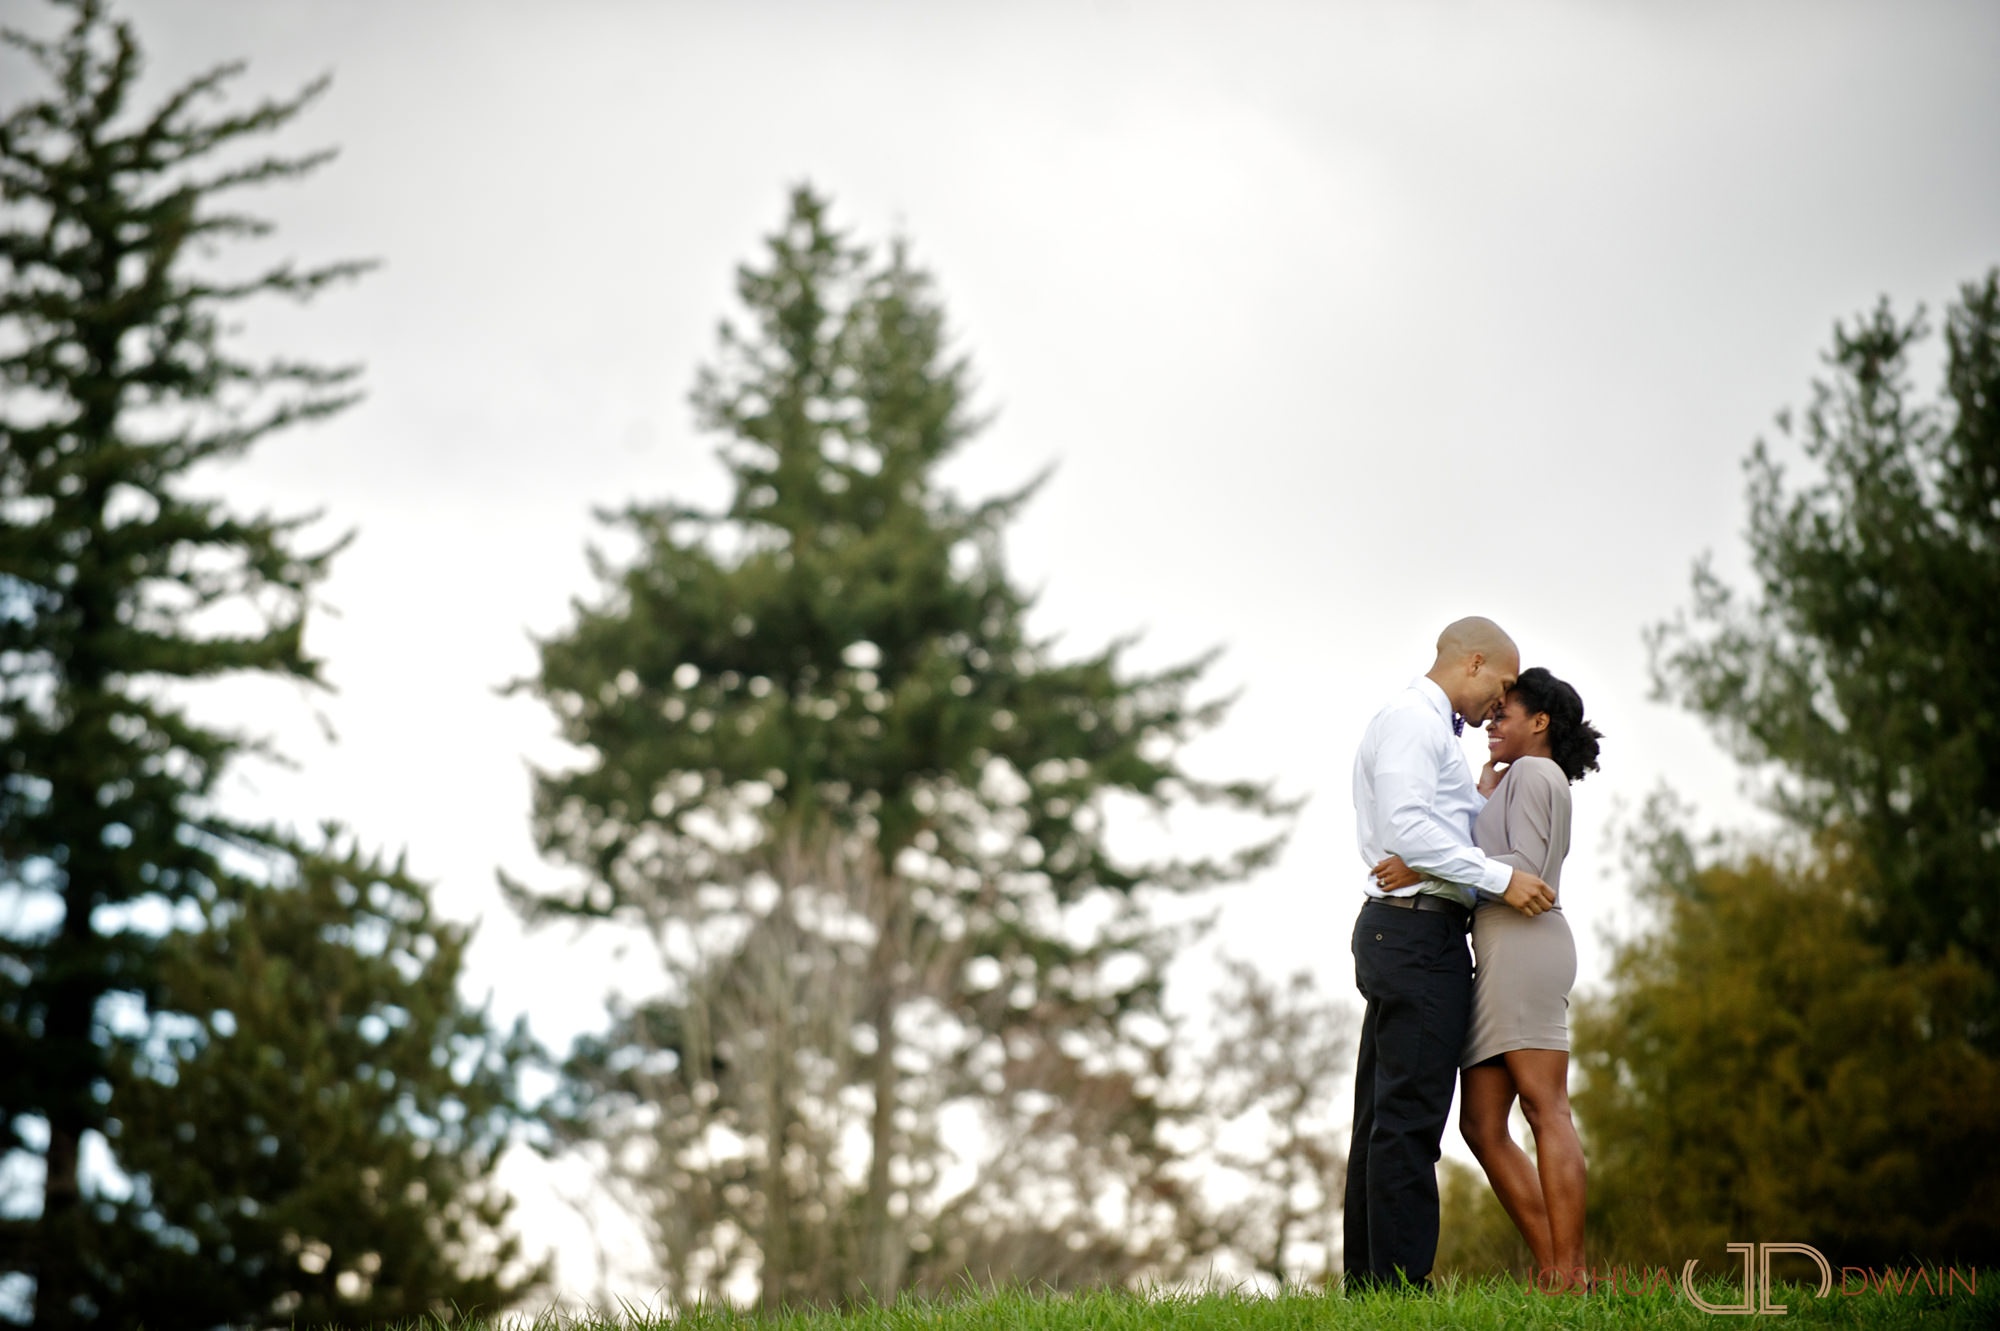 marnel-matthew--017-portland-oregon-engagement-photographer-joshua-dwain-20110305_mm_335